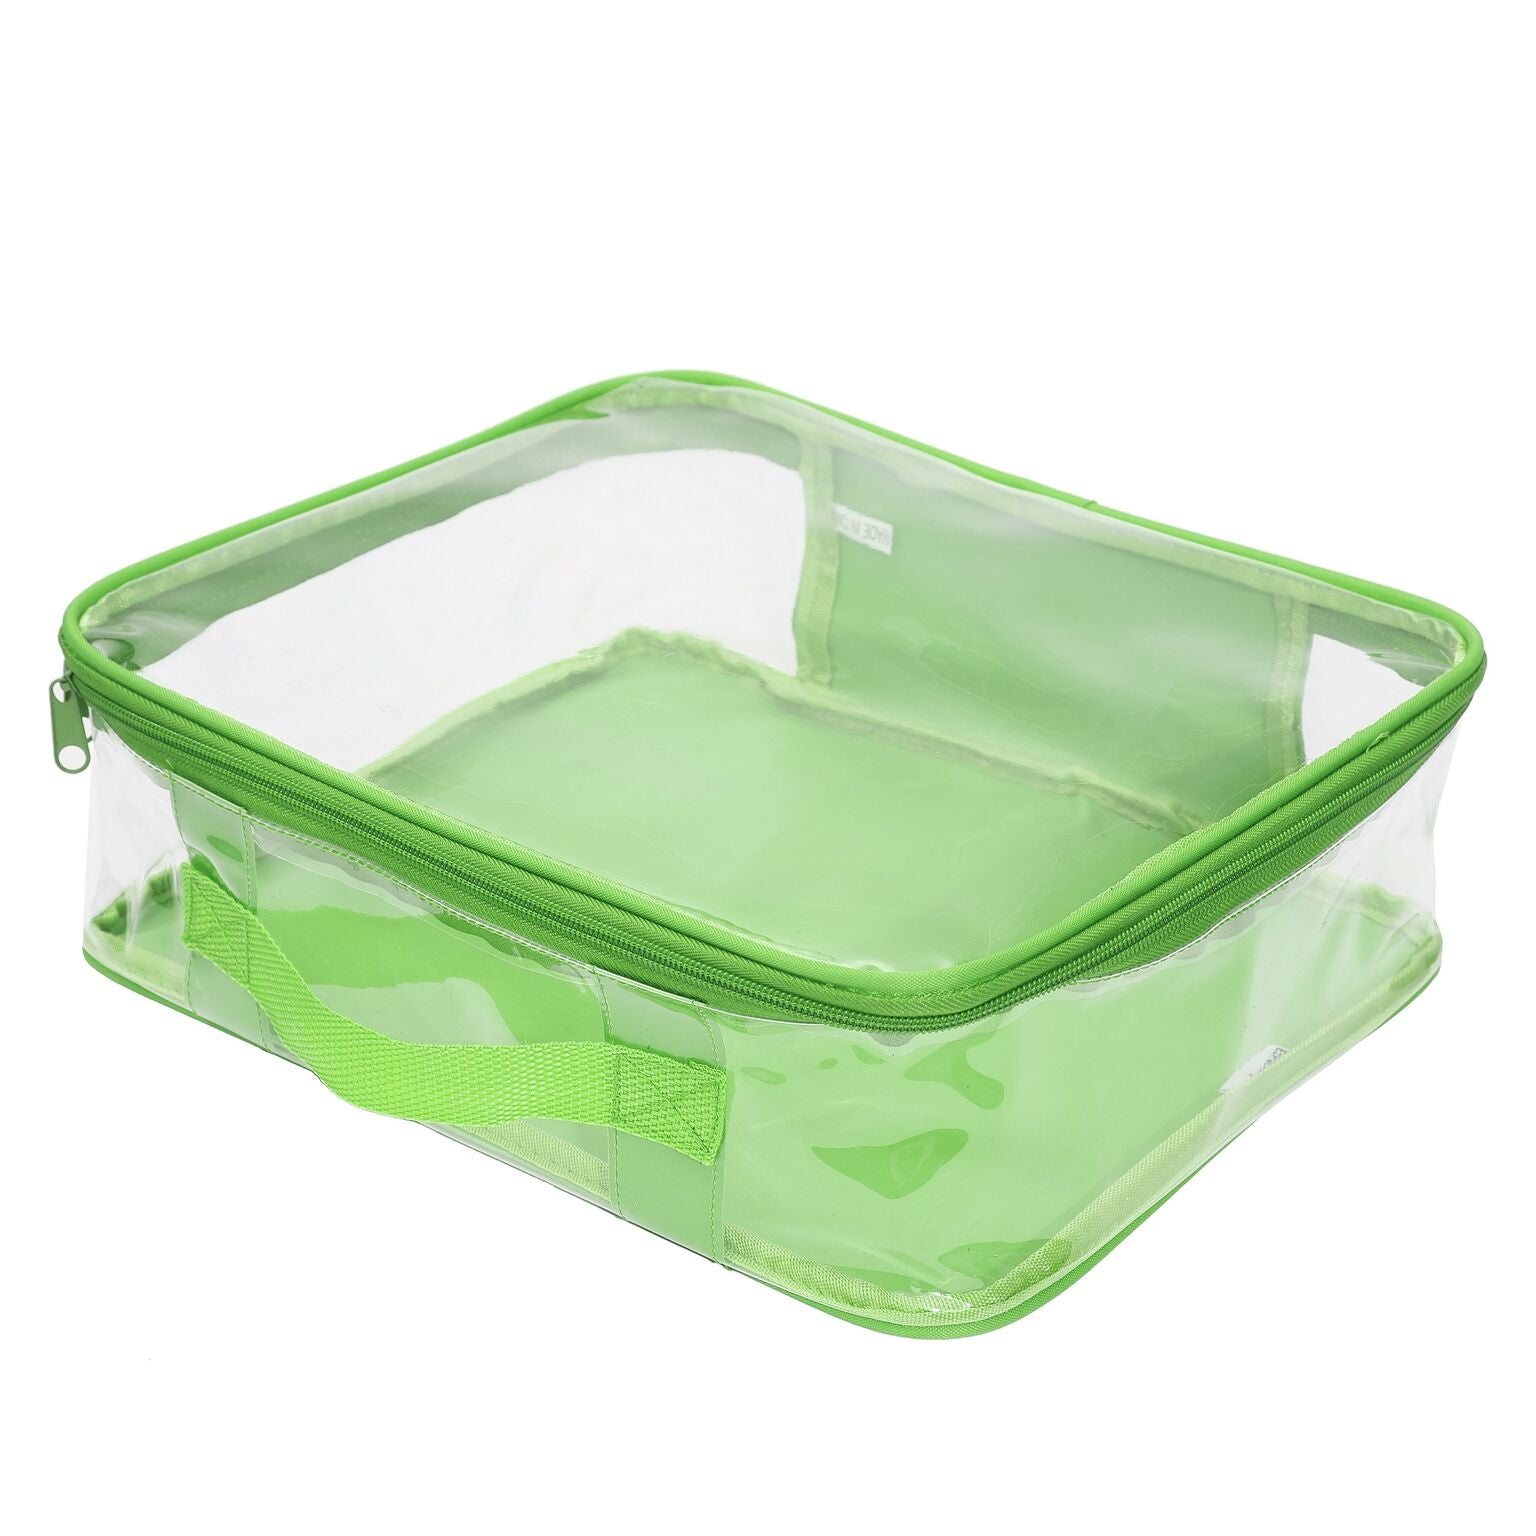 Green extra small packing cube